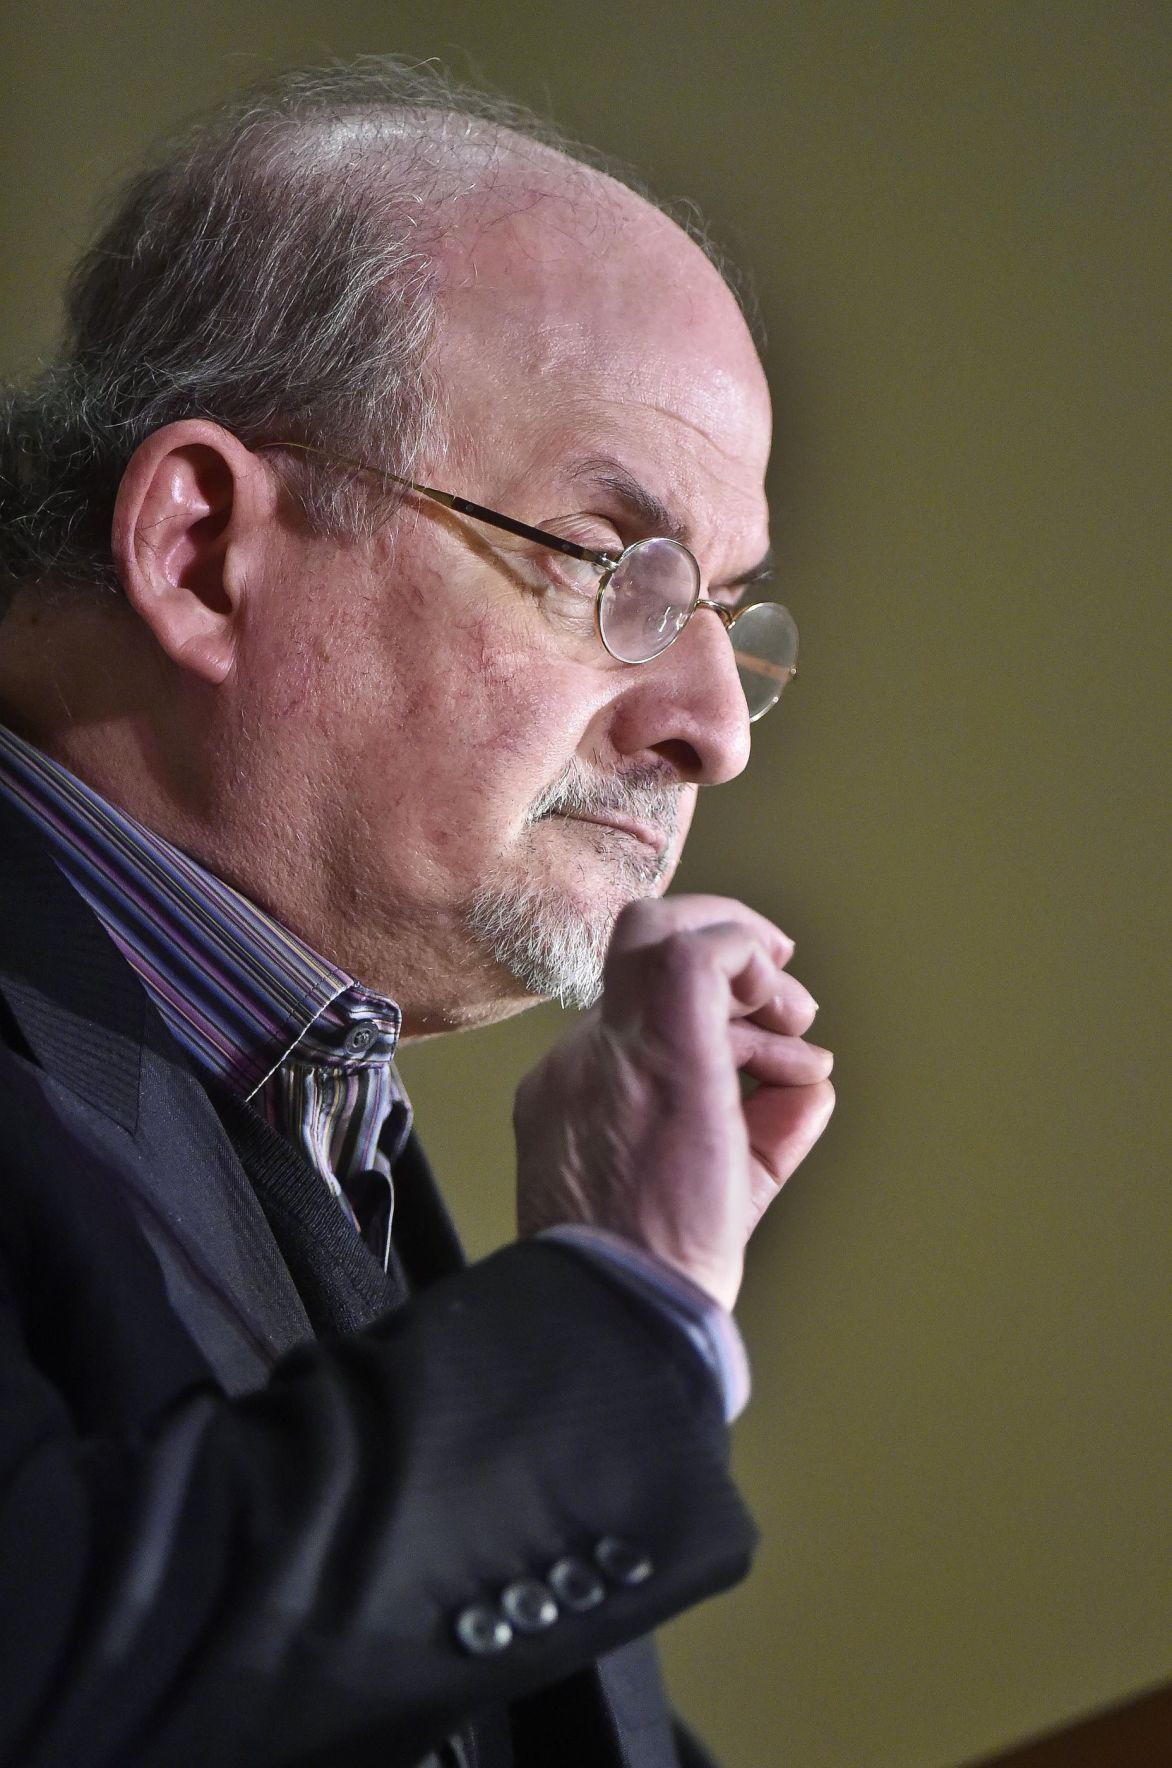 Rushdie, threatened over book, defends free speech